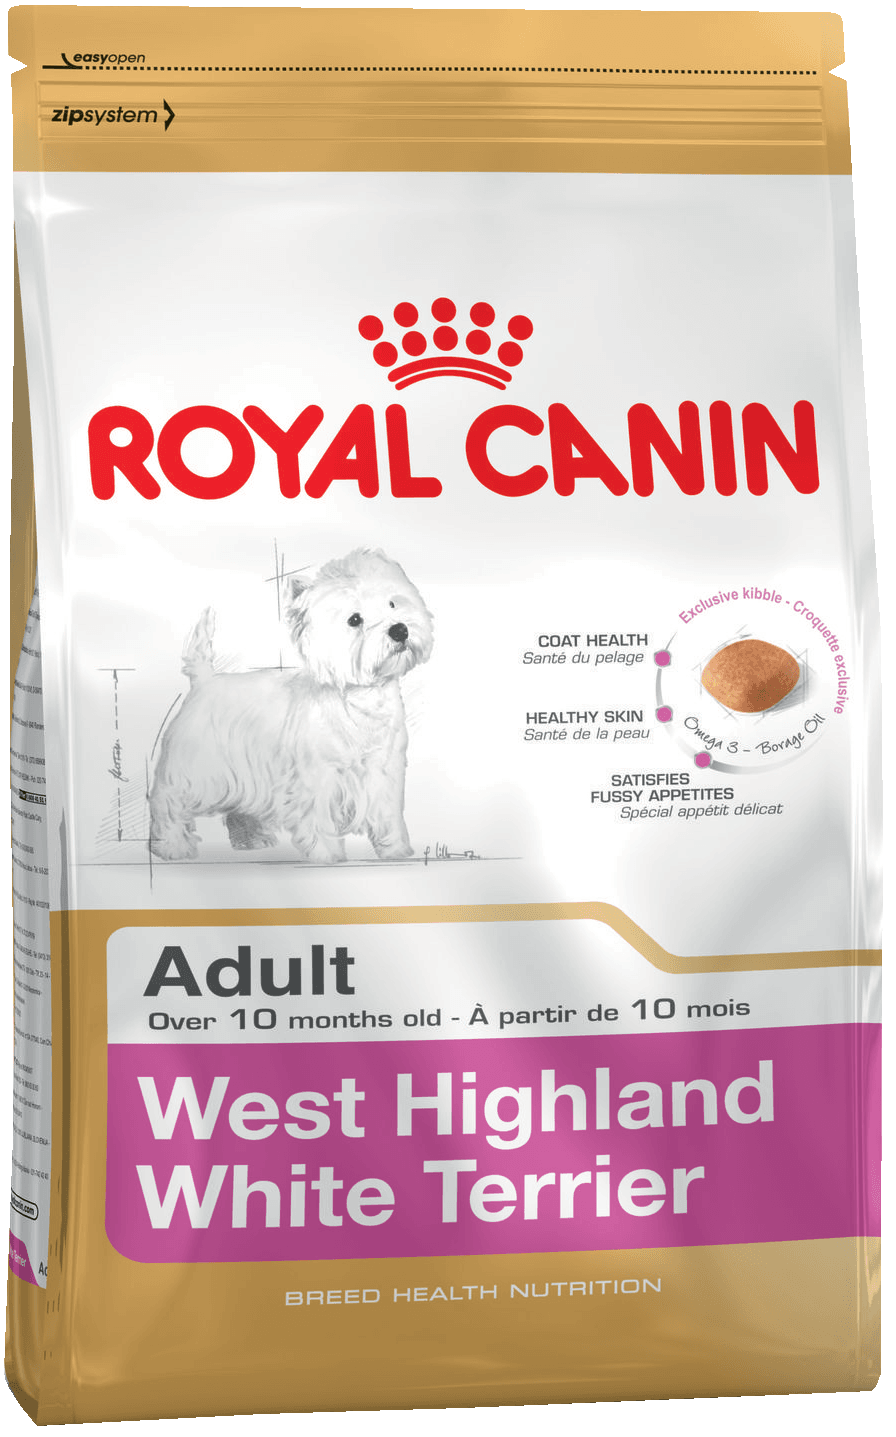 K west highland white terrier